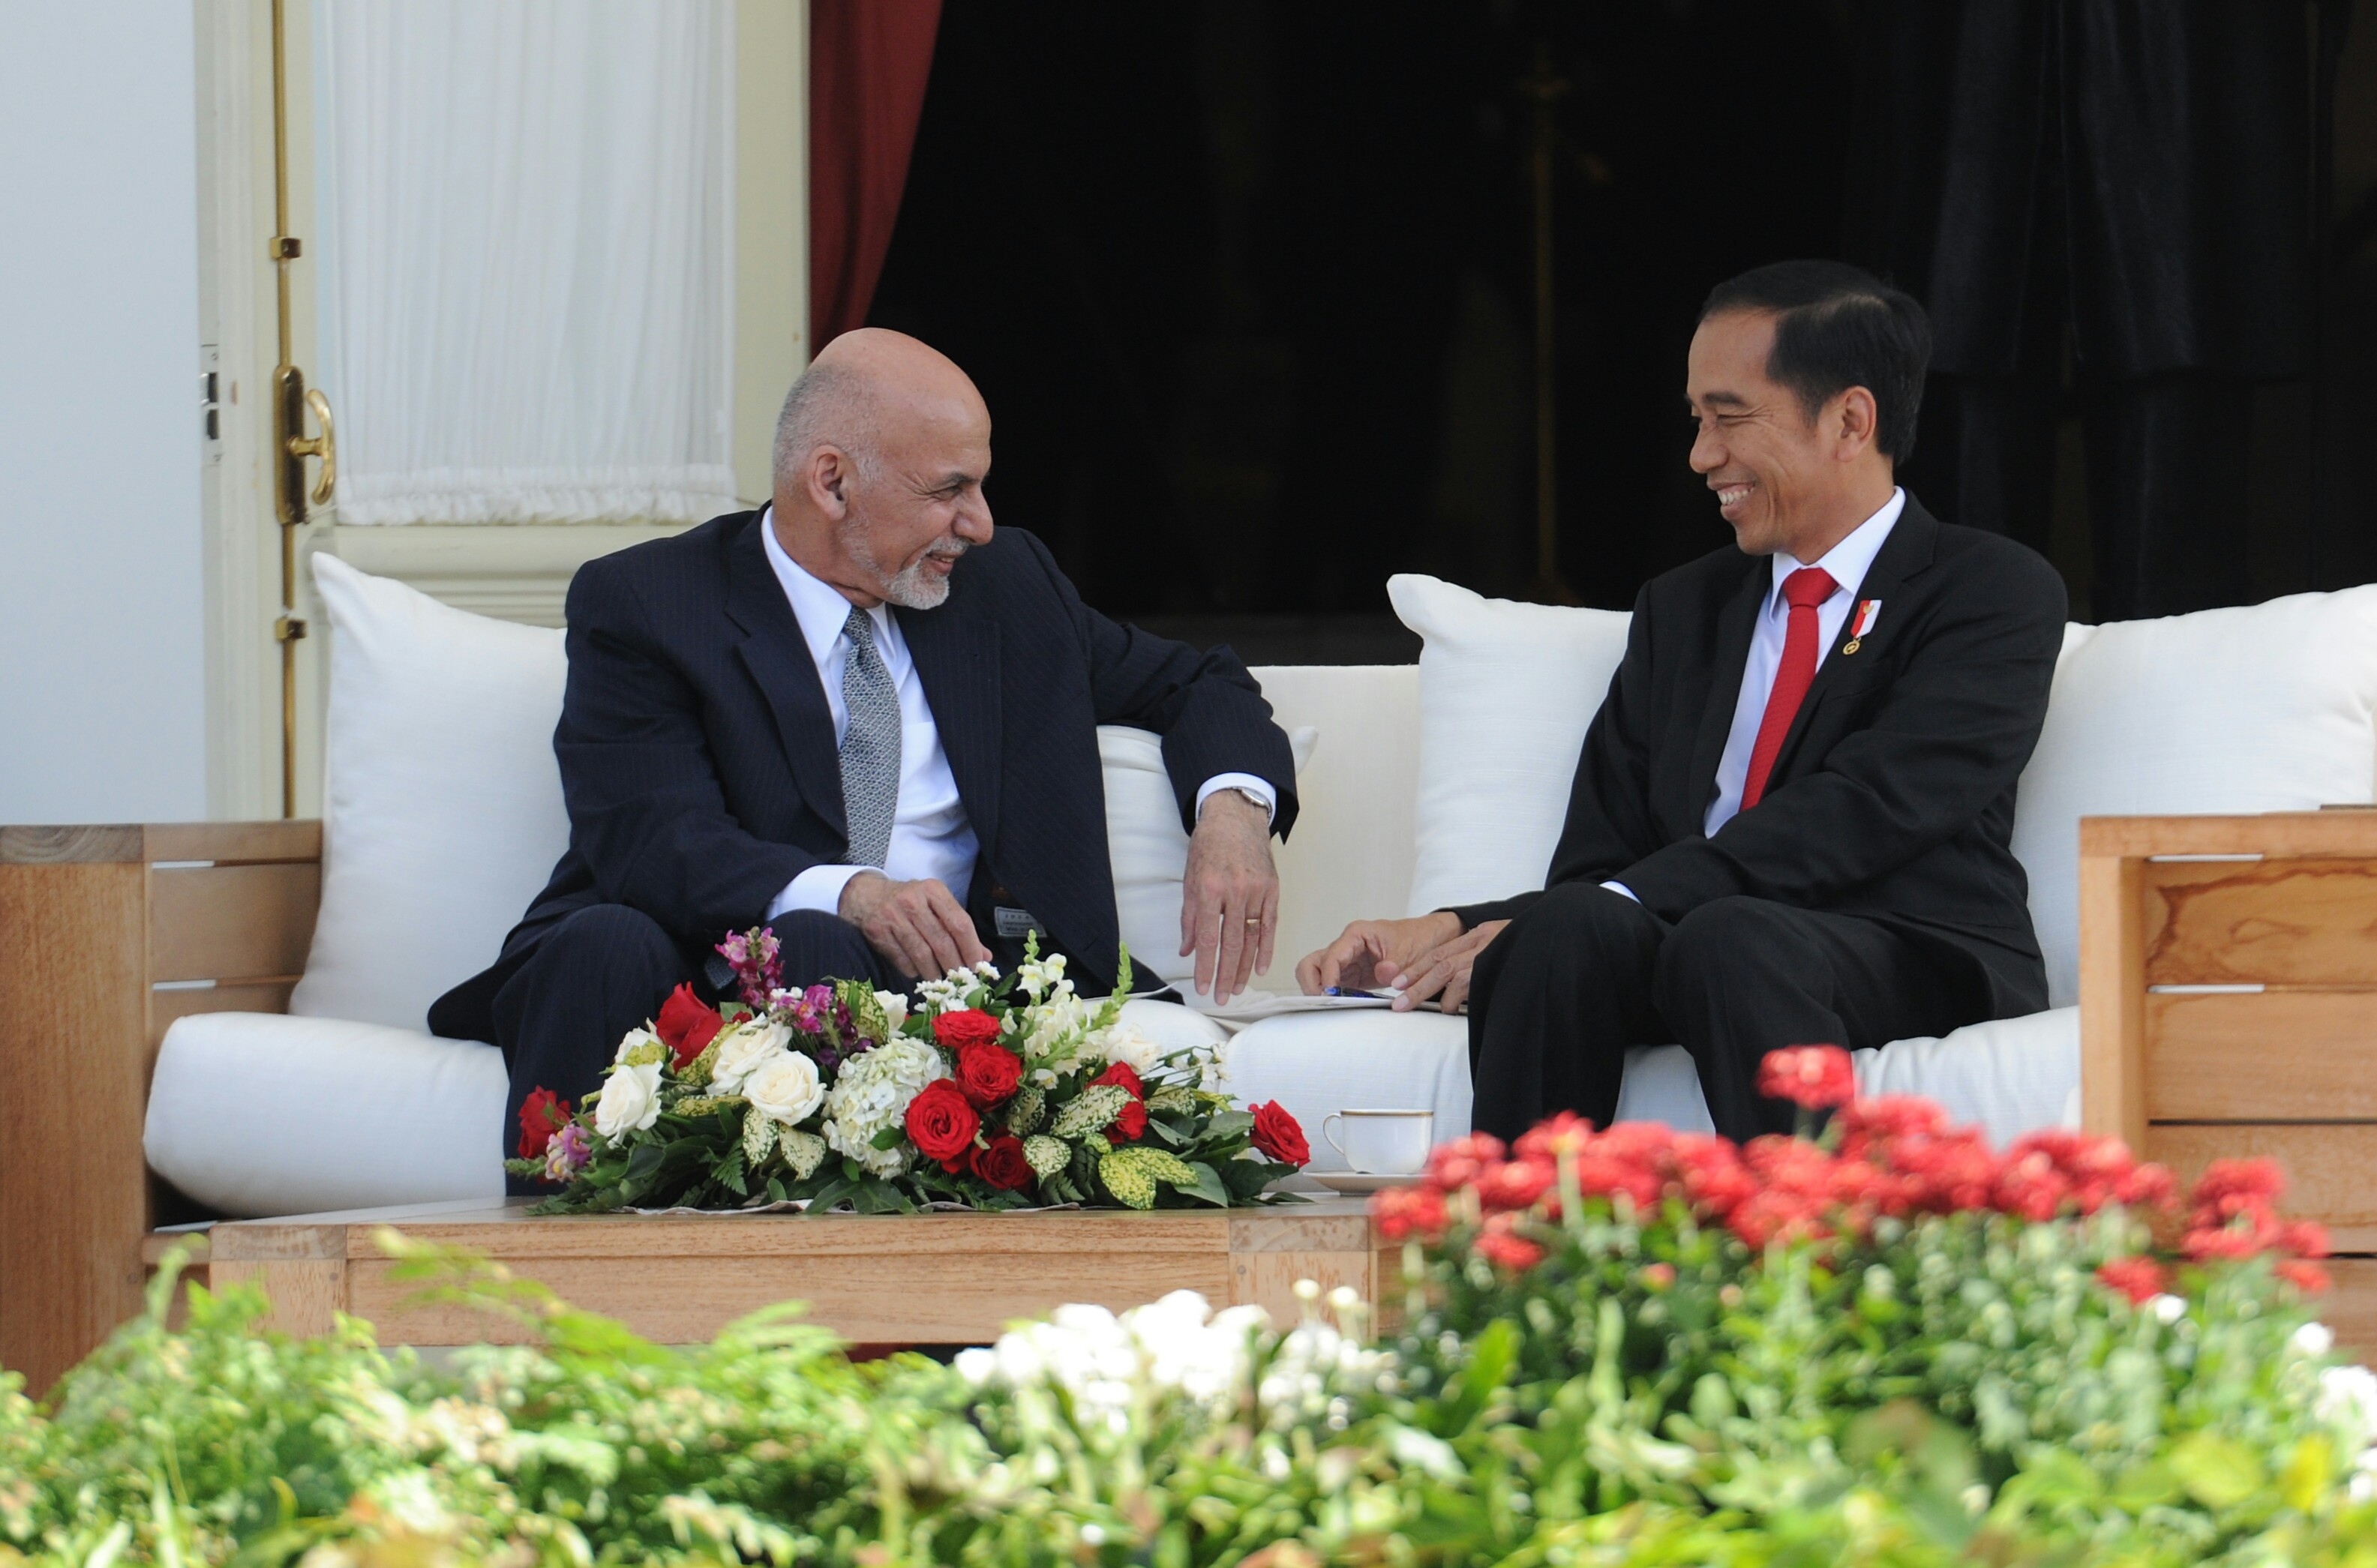 President Jokowi talks with President of Afghanistan Mohammad Ashraf Ghani before a bilateral meeting between the two countries at the Merdeka Palace, Jakarta, Wednesday (5/4). (Photo by: Rahmat/Public Relations Division)